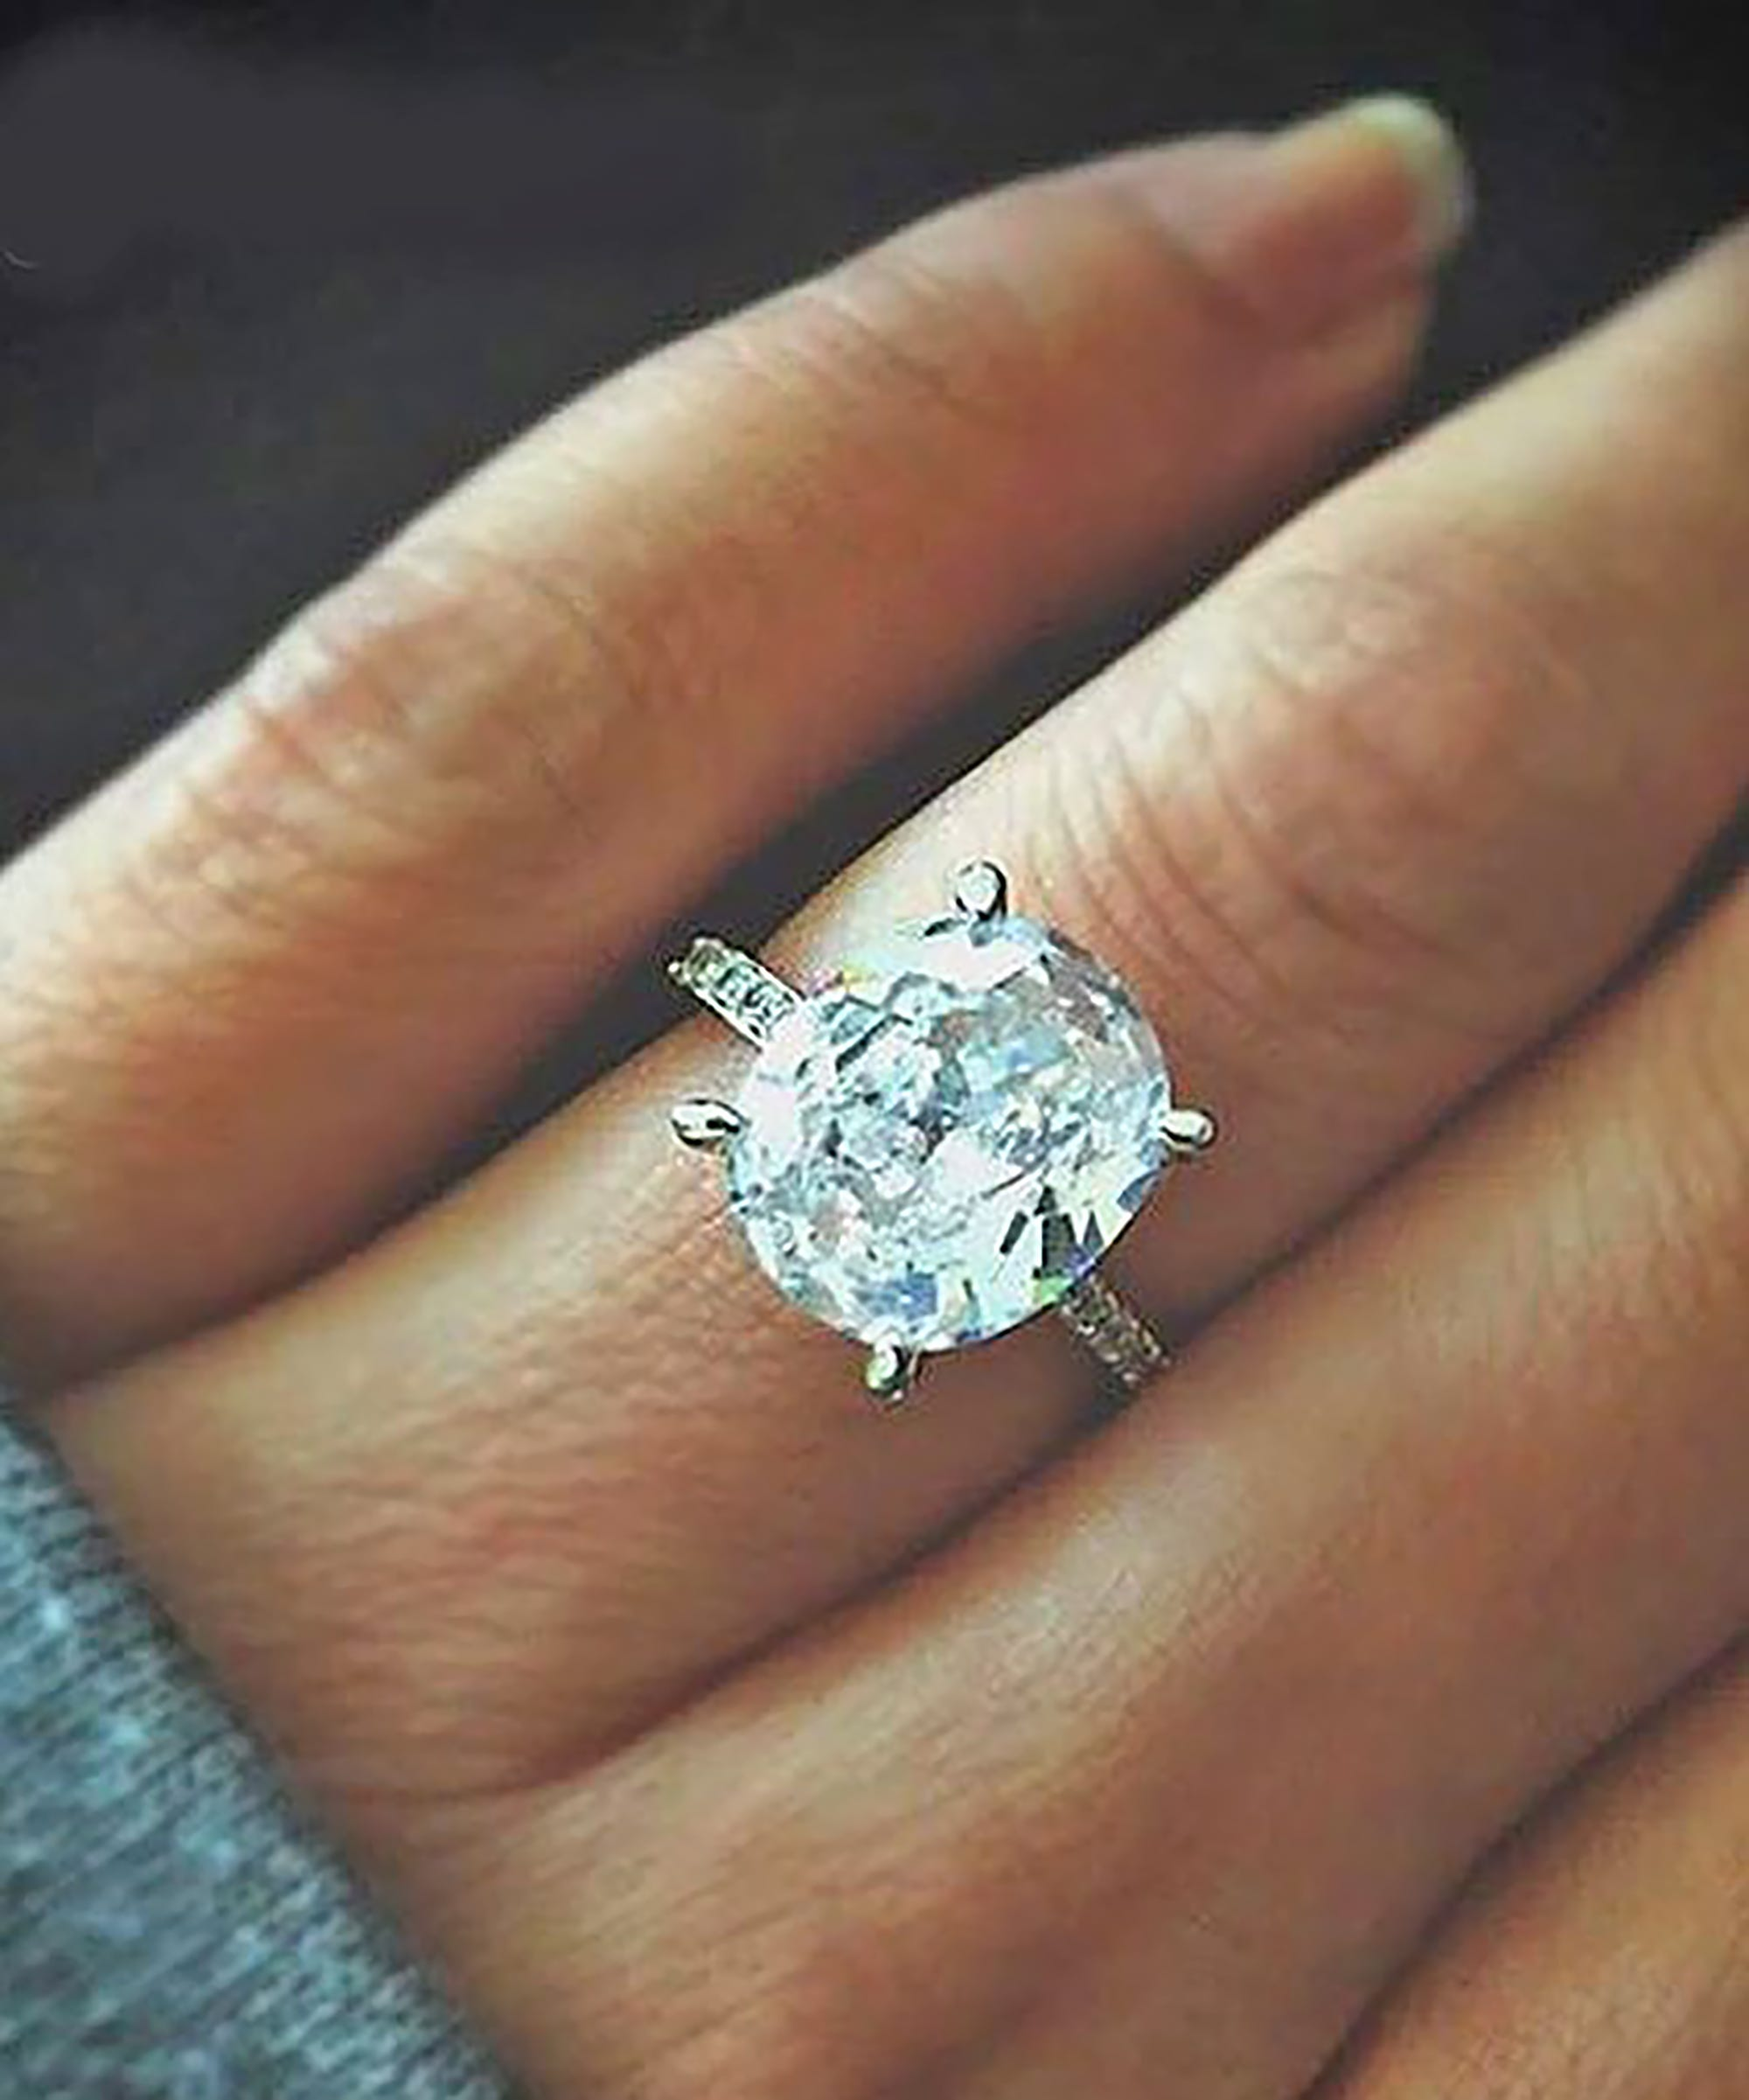 designer exclusive engagement rings photo hilton and paris s carat courtesy details her ring diamond on greene co